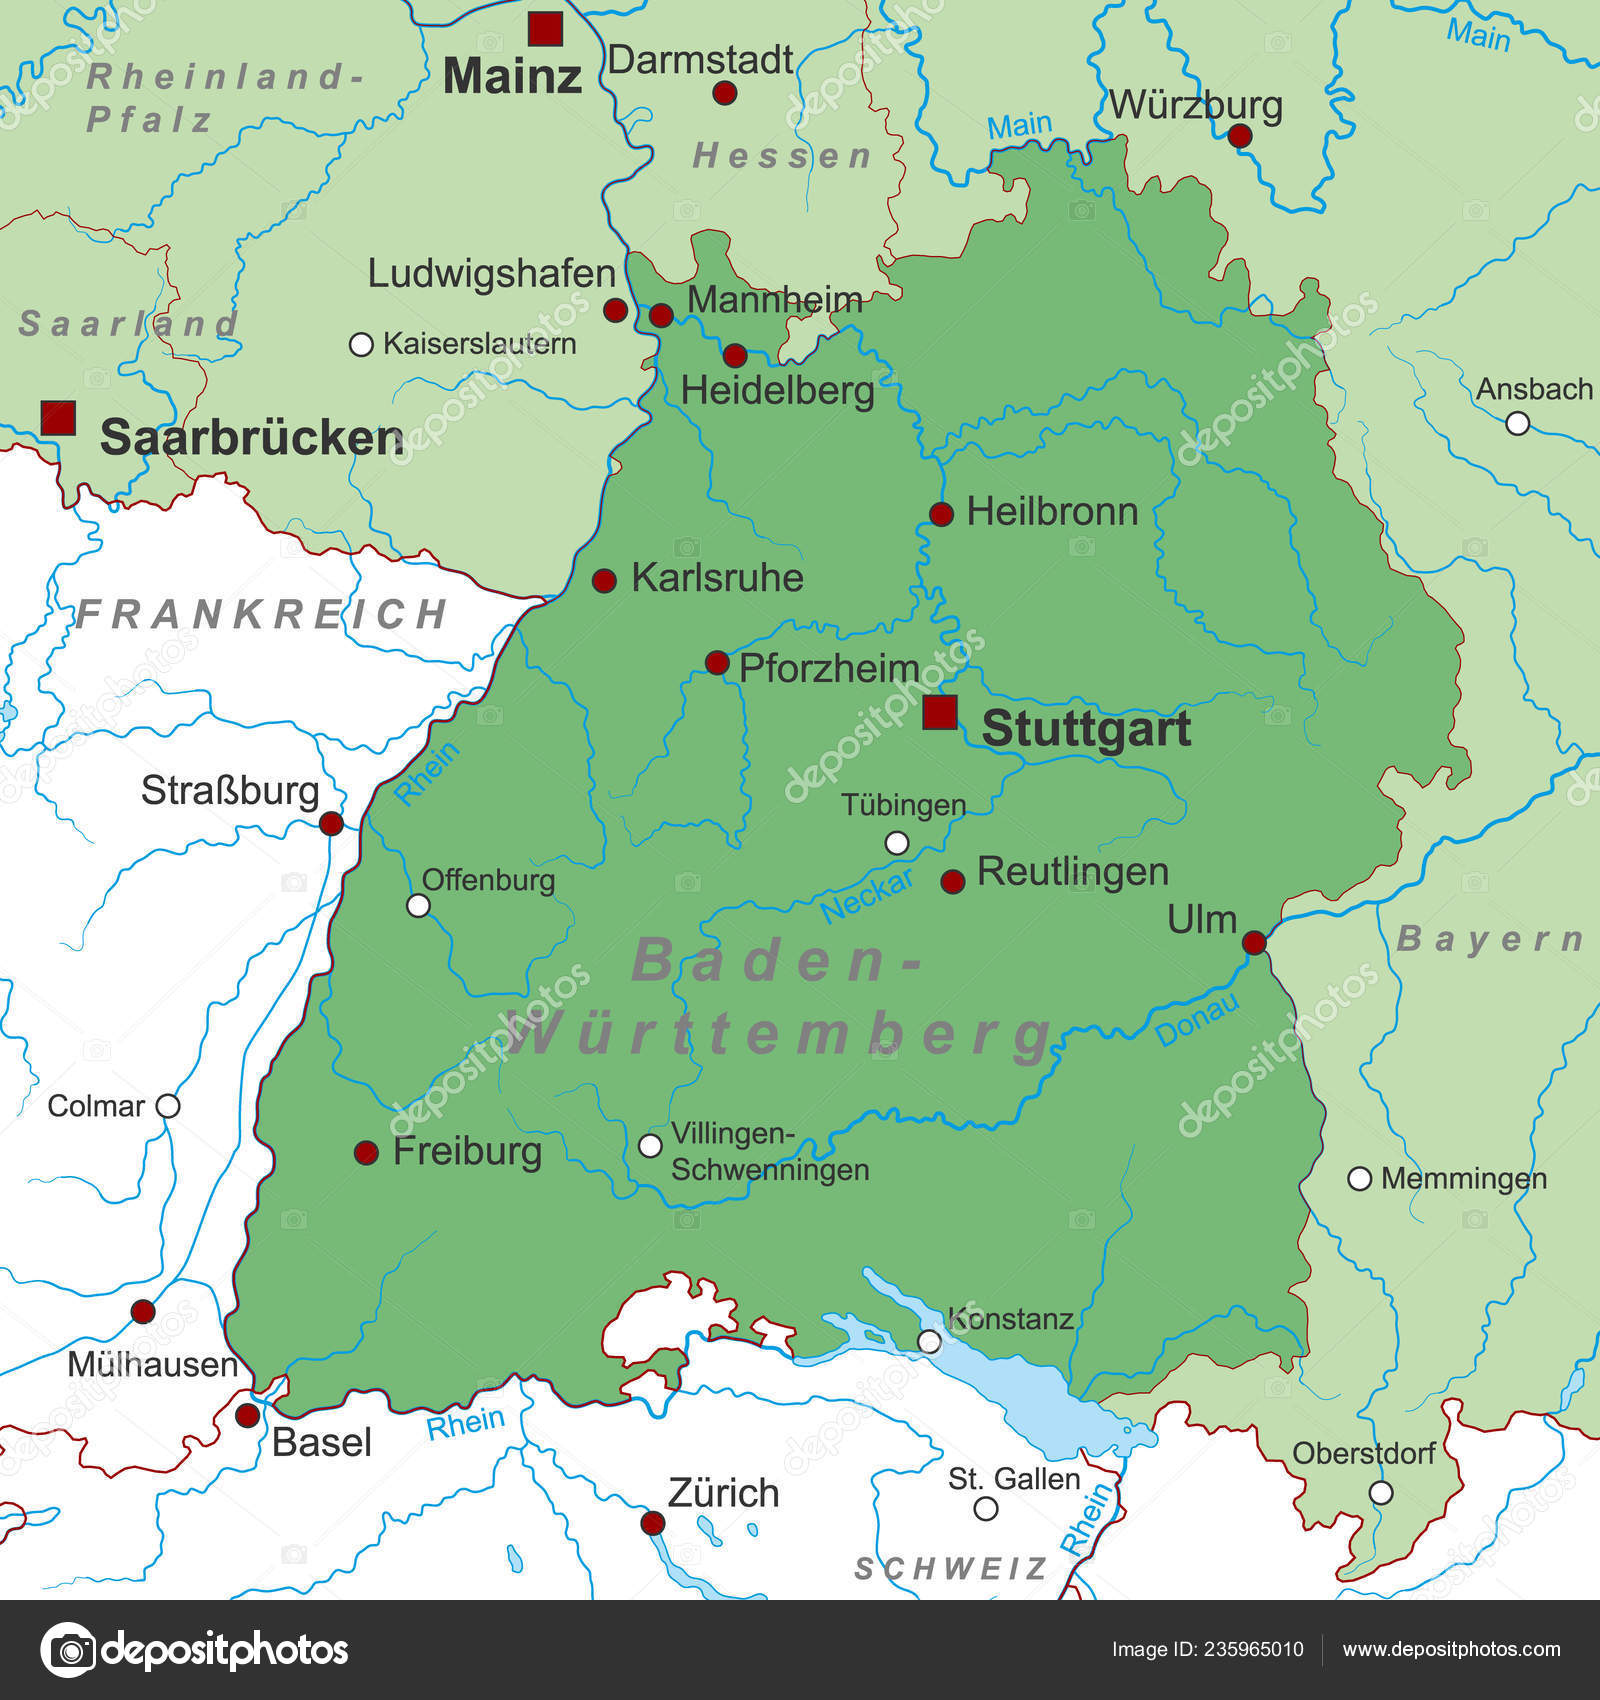 Map Of Germany Karlsruhe Baden.Baden Wurttemberg Map Germany High Detailed Stock Vector C Ii